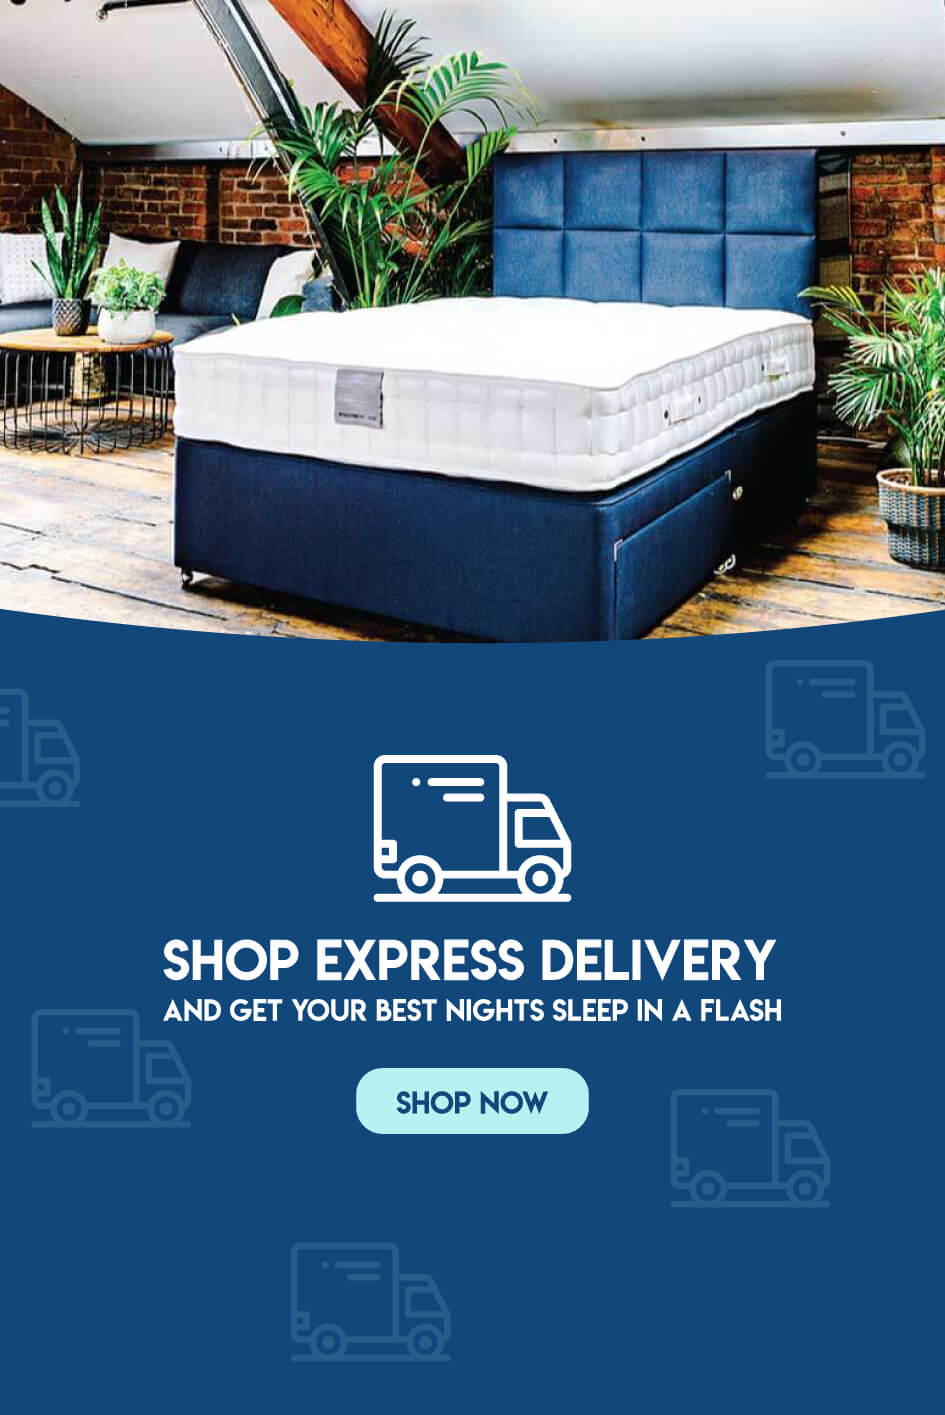 Mobile-Banners-express-delivery